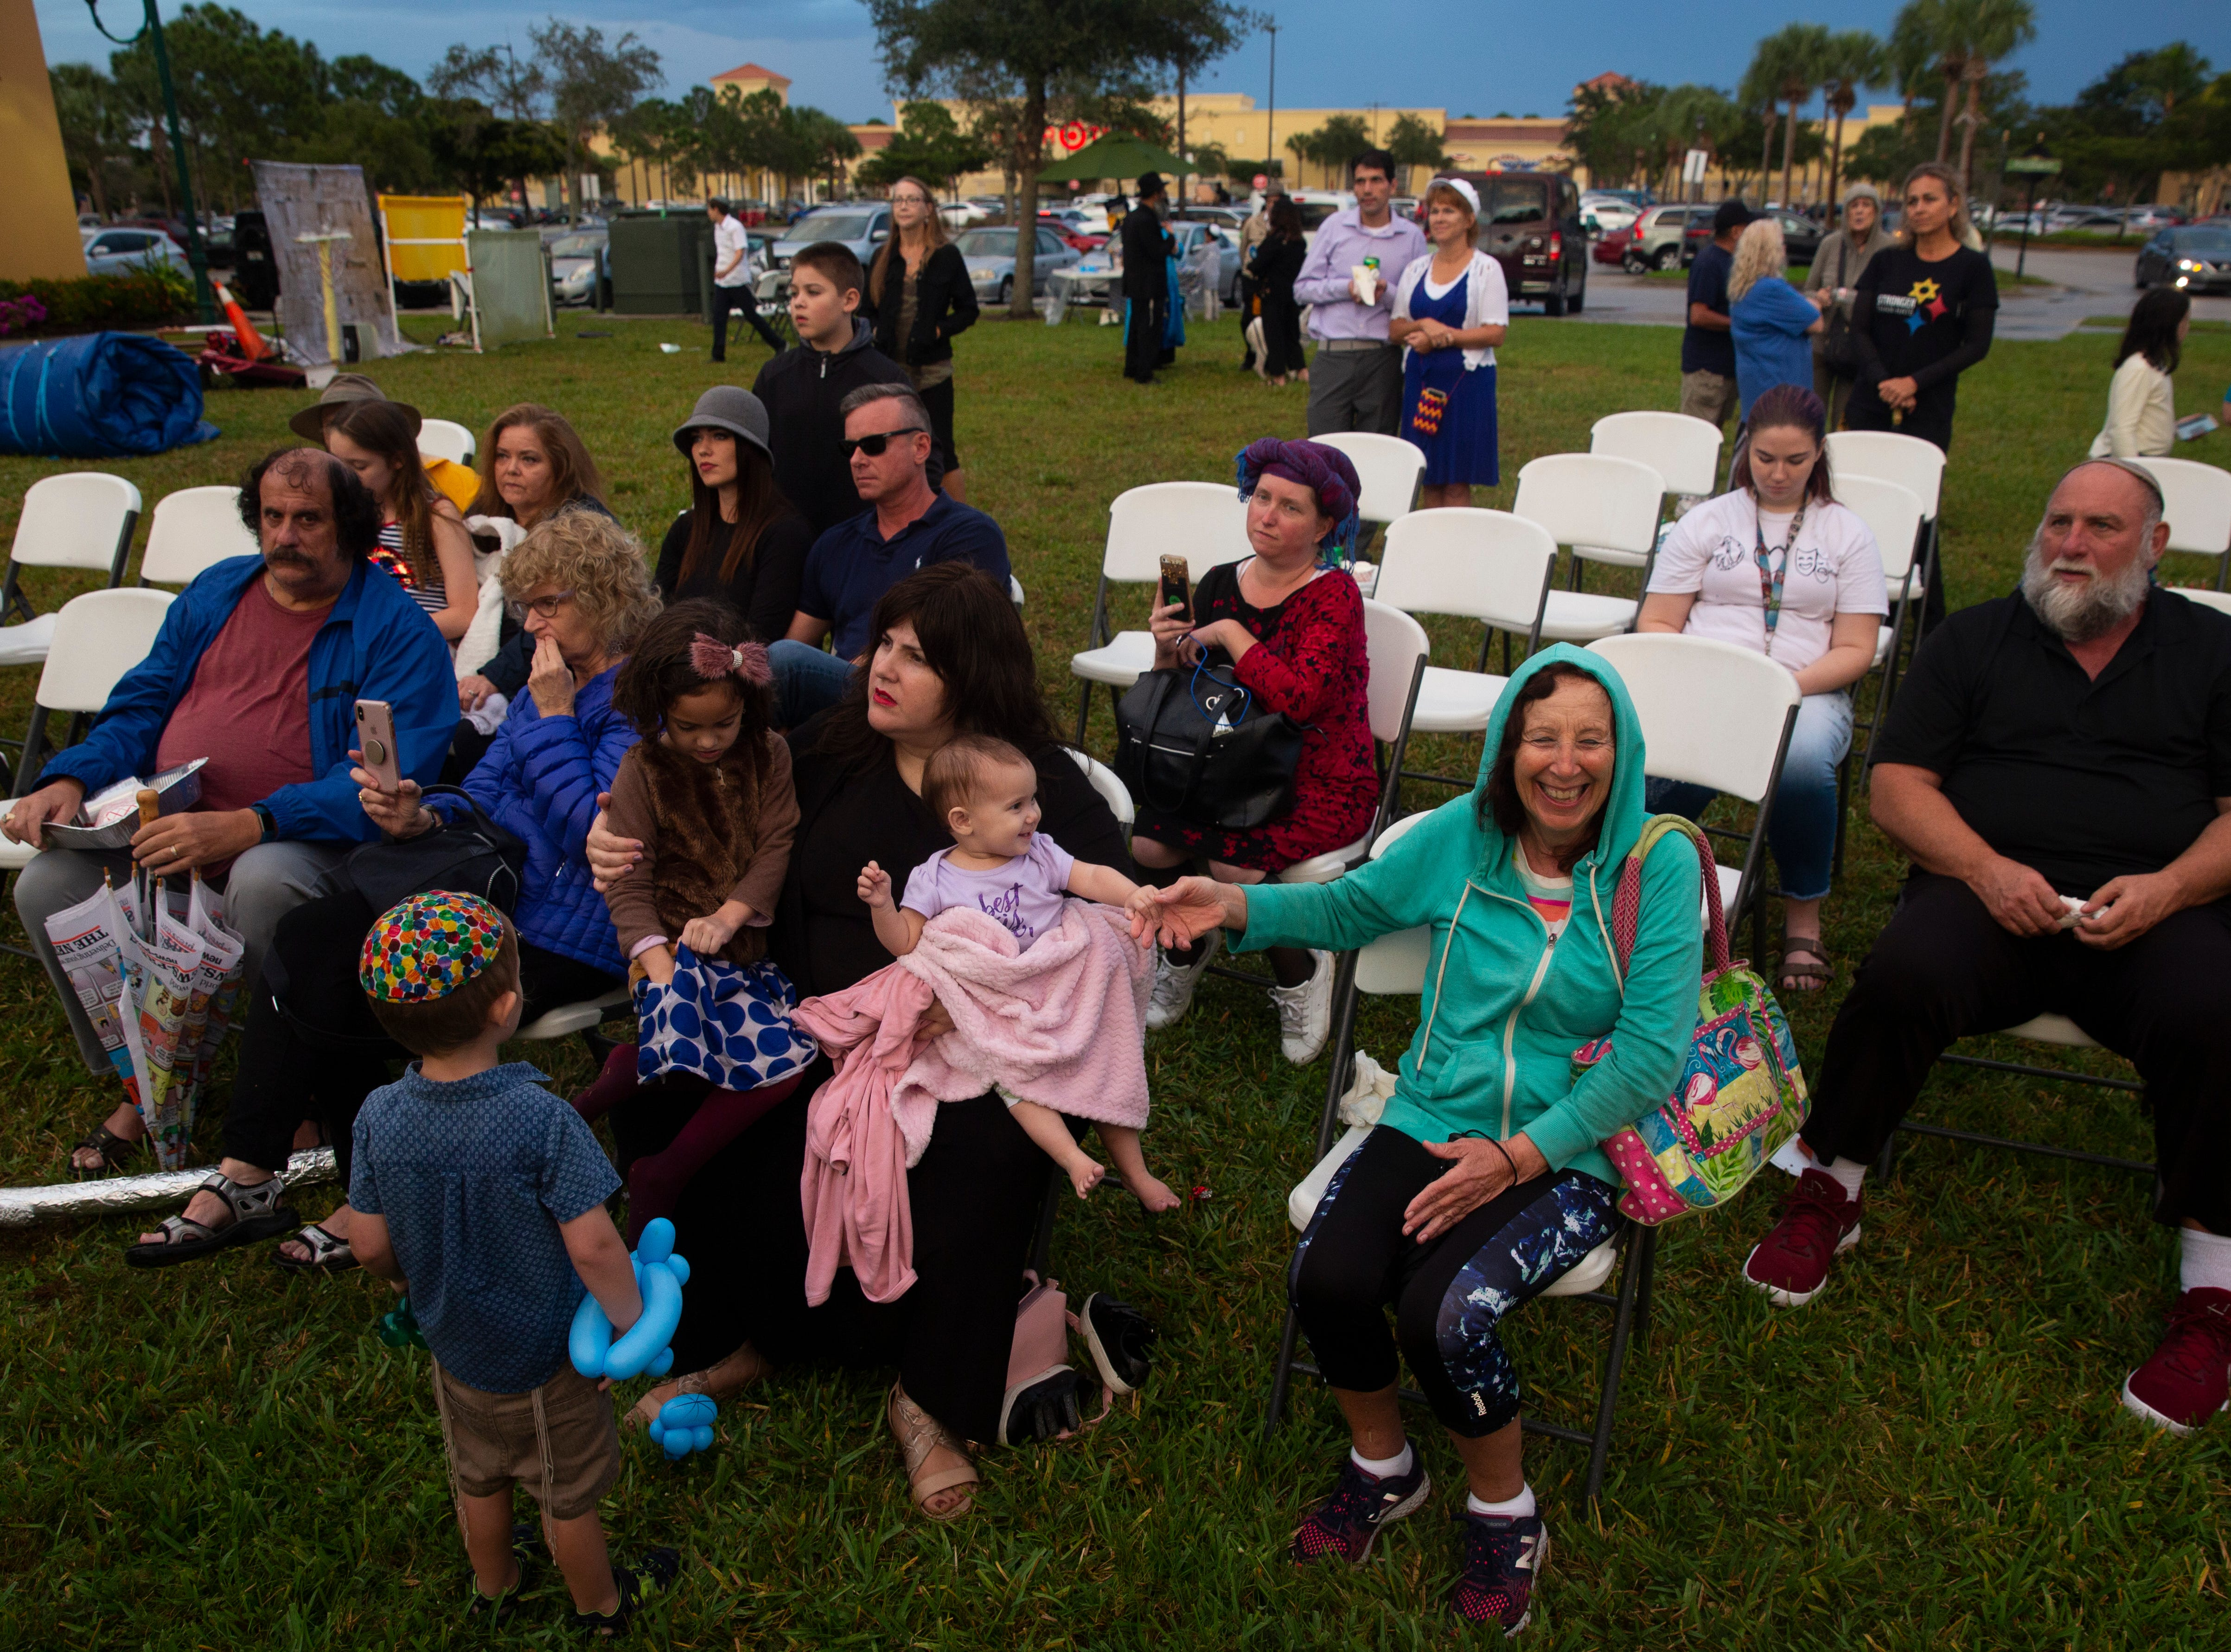 Stella Gangel, right foreground, smiles as Rabbi Mendy Greenberg, of Chabad of Bonita Springs, Estero & FGCU, prepares to light the 9-foot menorah on a rainy Sunday evening, Dec. 9, 2018, at Coconut Point in Estero to celebrate the last night of Hanukkah.